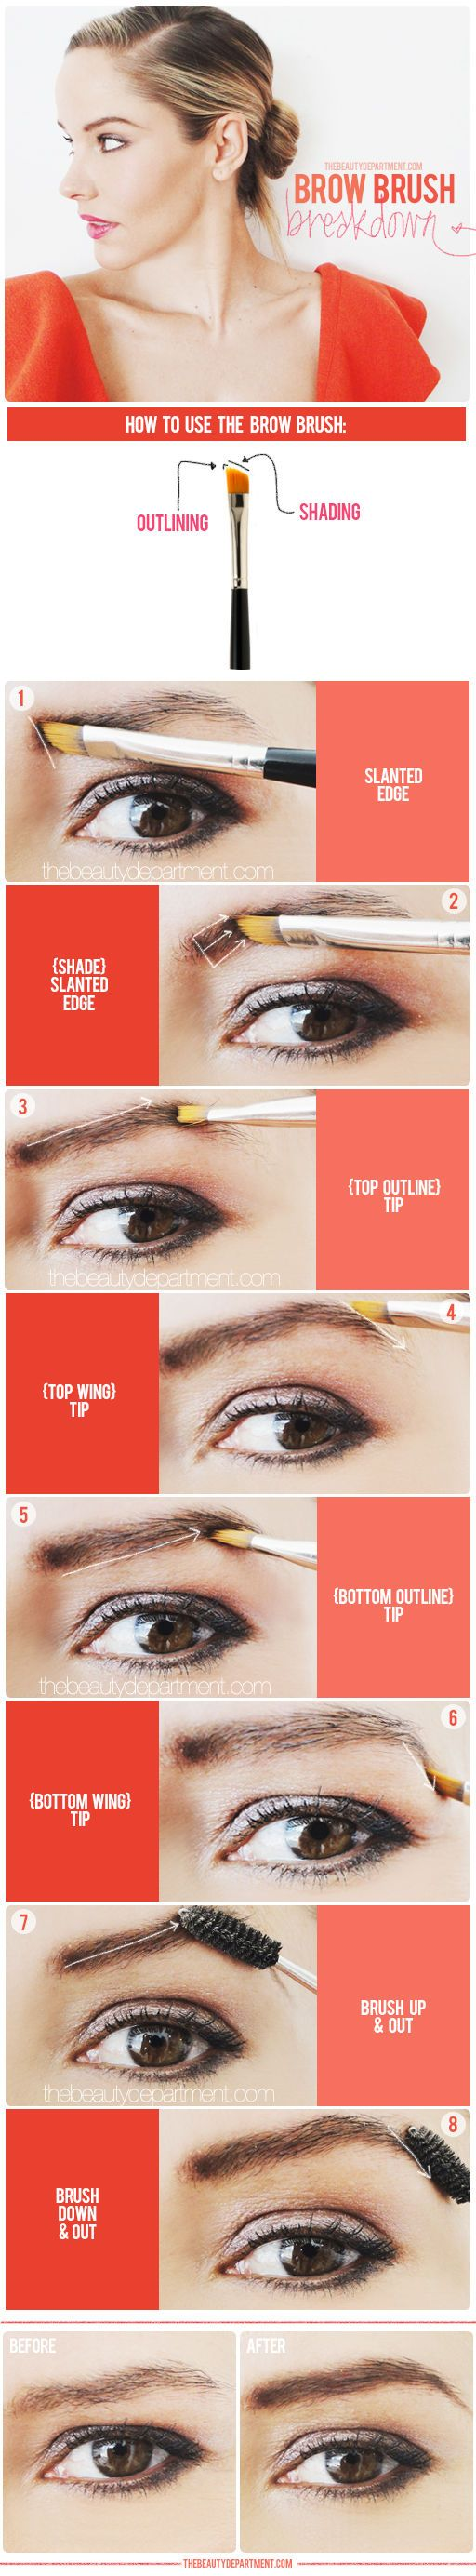 Good to know: how to use a brow brush....